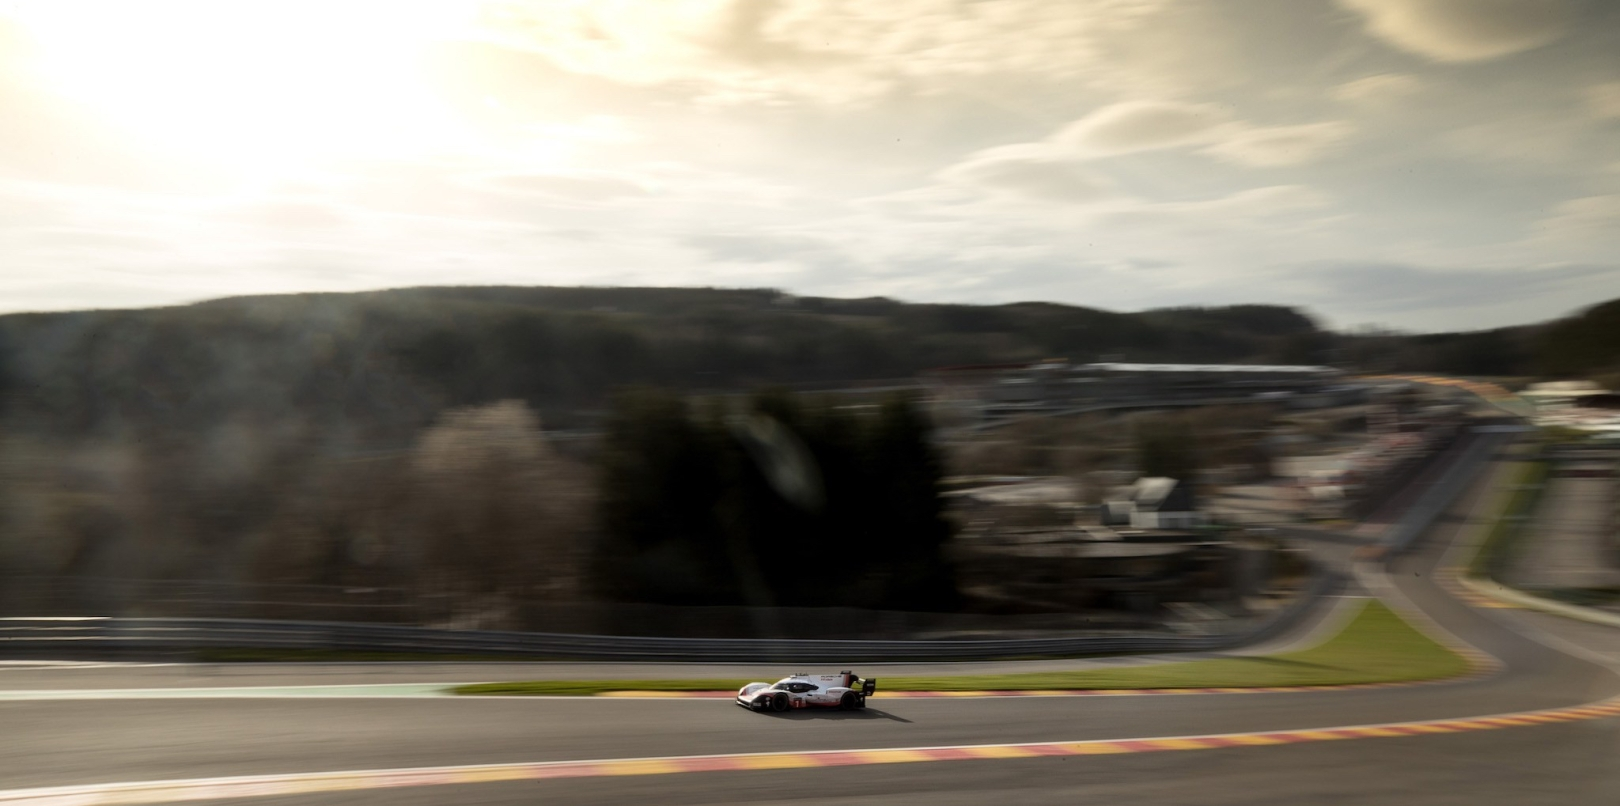 The 919 Evo at speed.